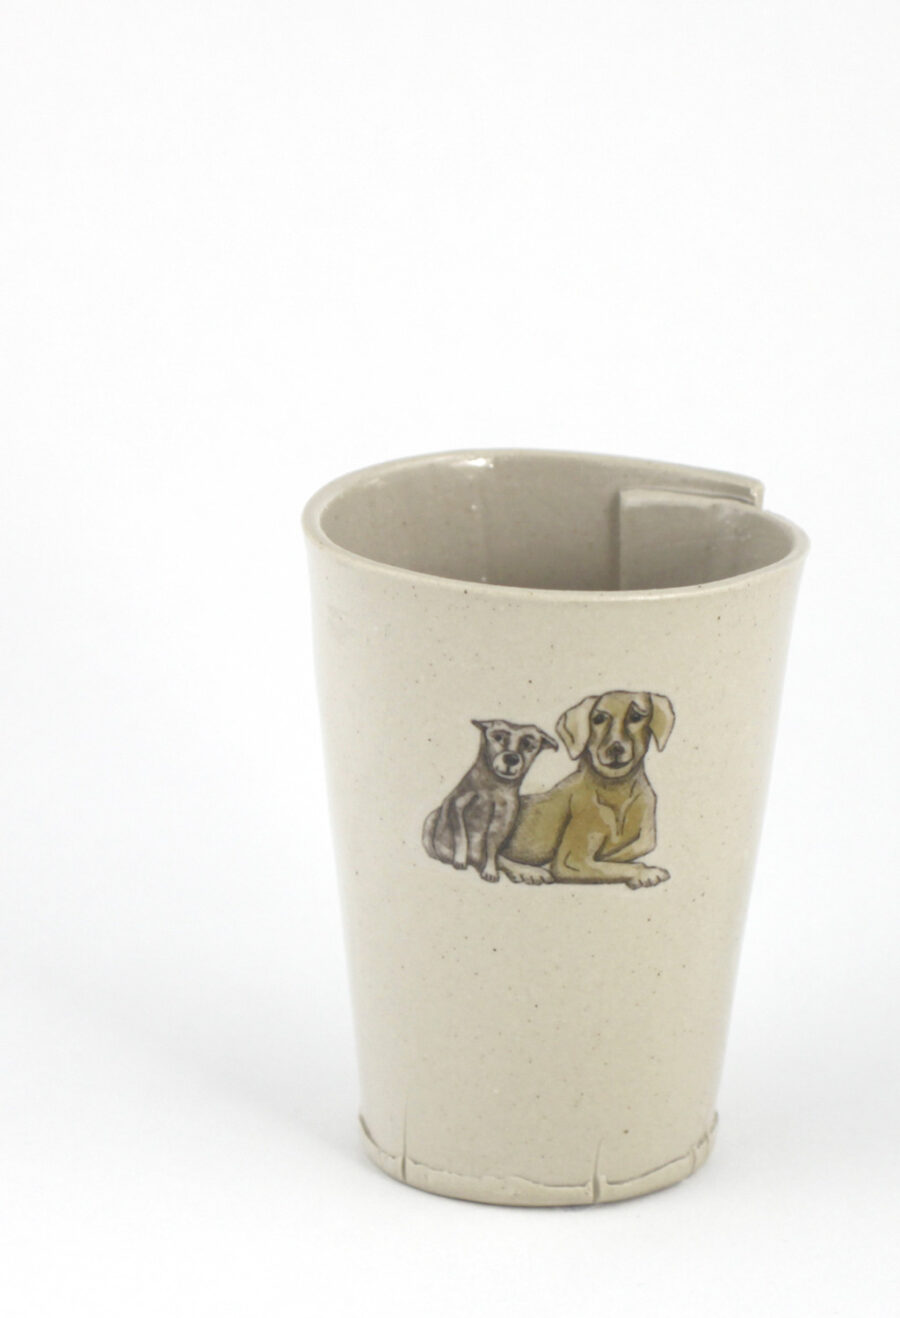 keramikbecher-mit-gezeichneten-Hunden-am-viehtheater-my-deer-illustrated-ceramics